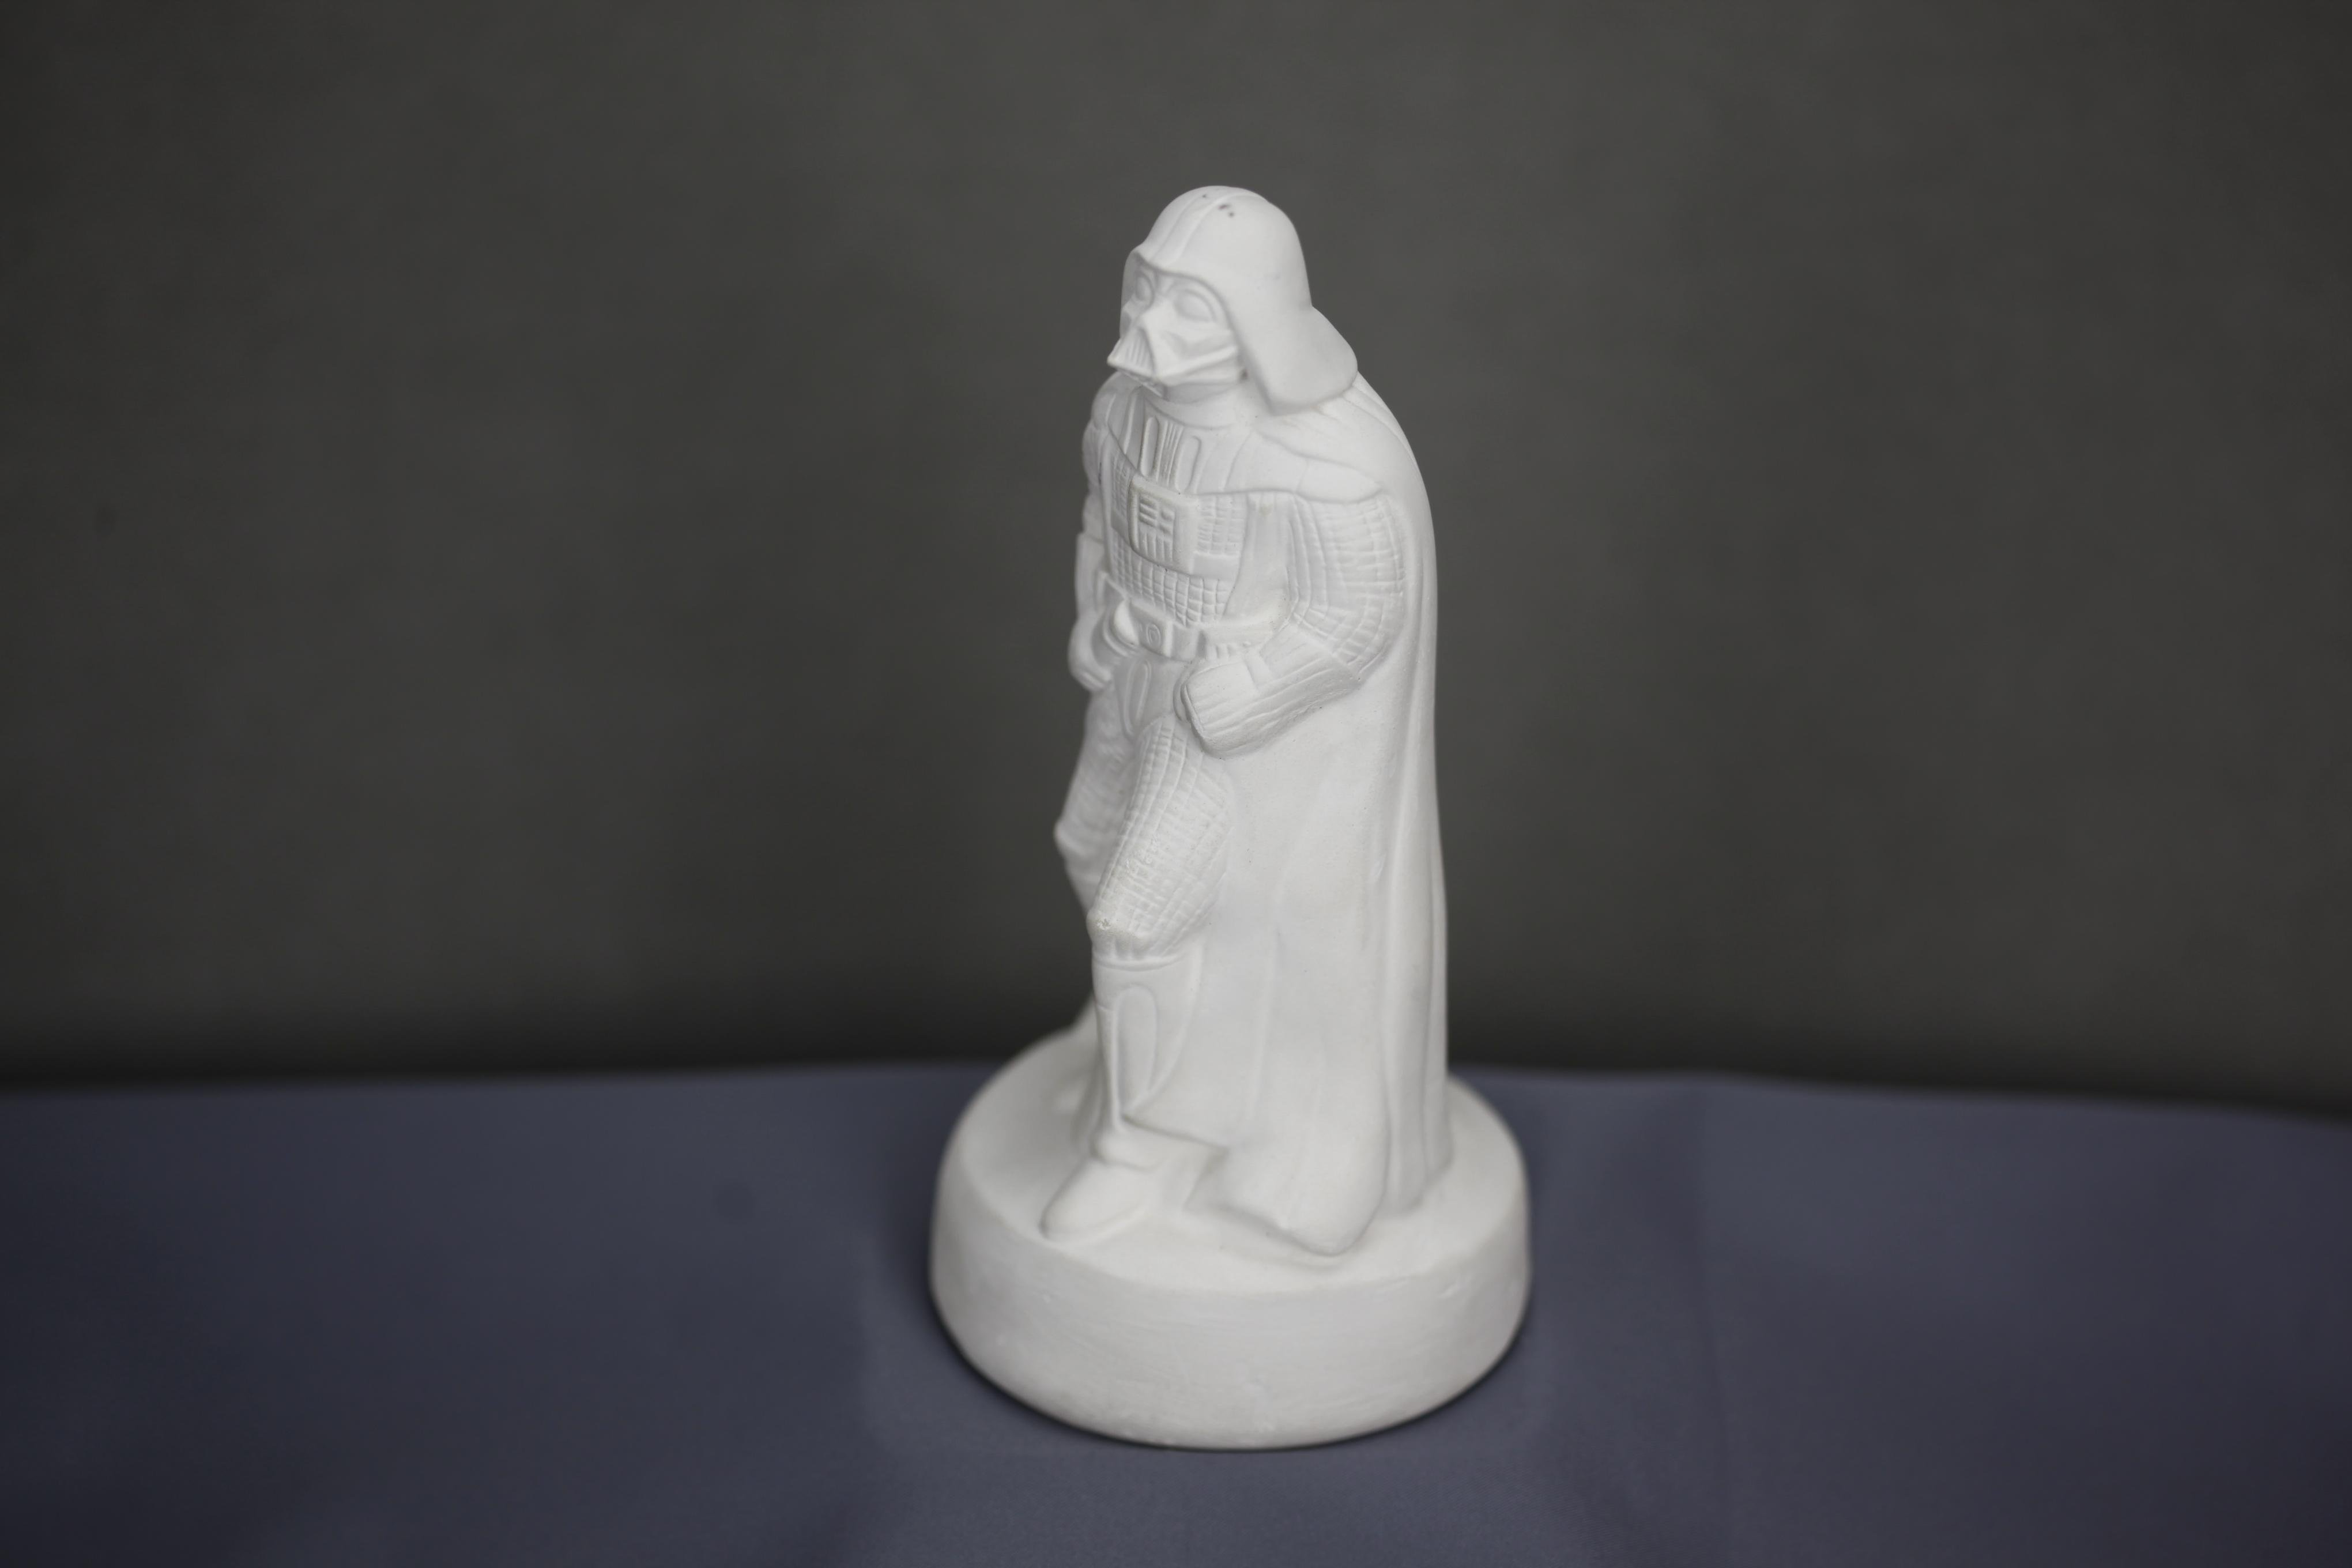 Moulded latex sculpute